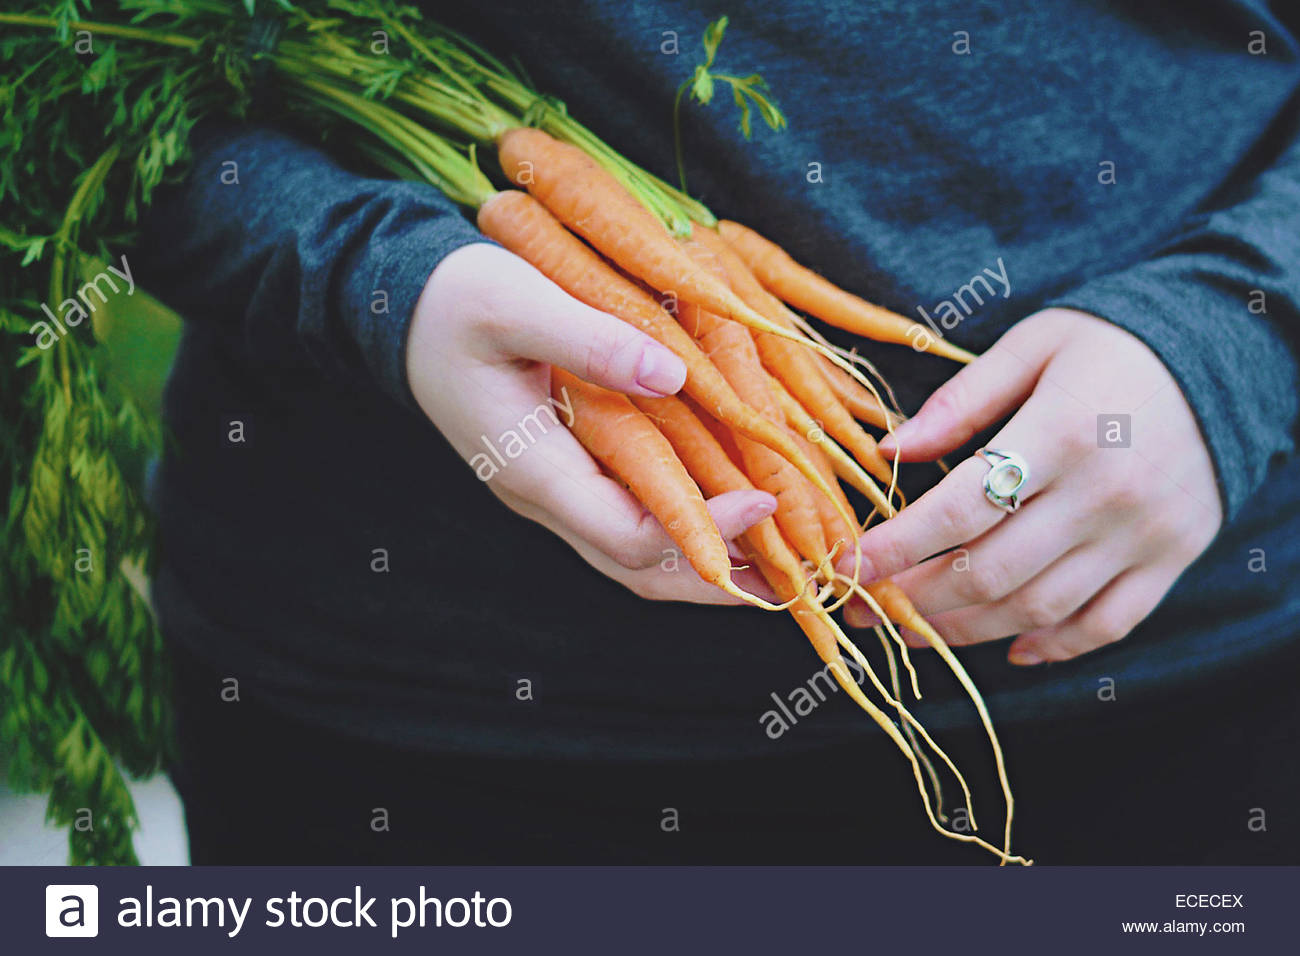 United Kingdom, England, Warwickshire, Stratford-upon-Avon, Young woman holding home grown carrots in hands - Stock Image